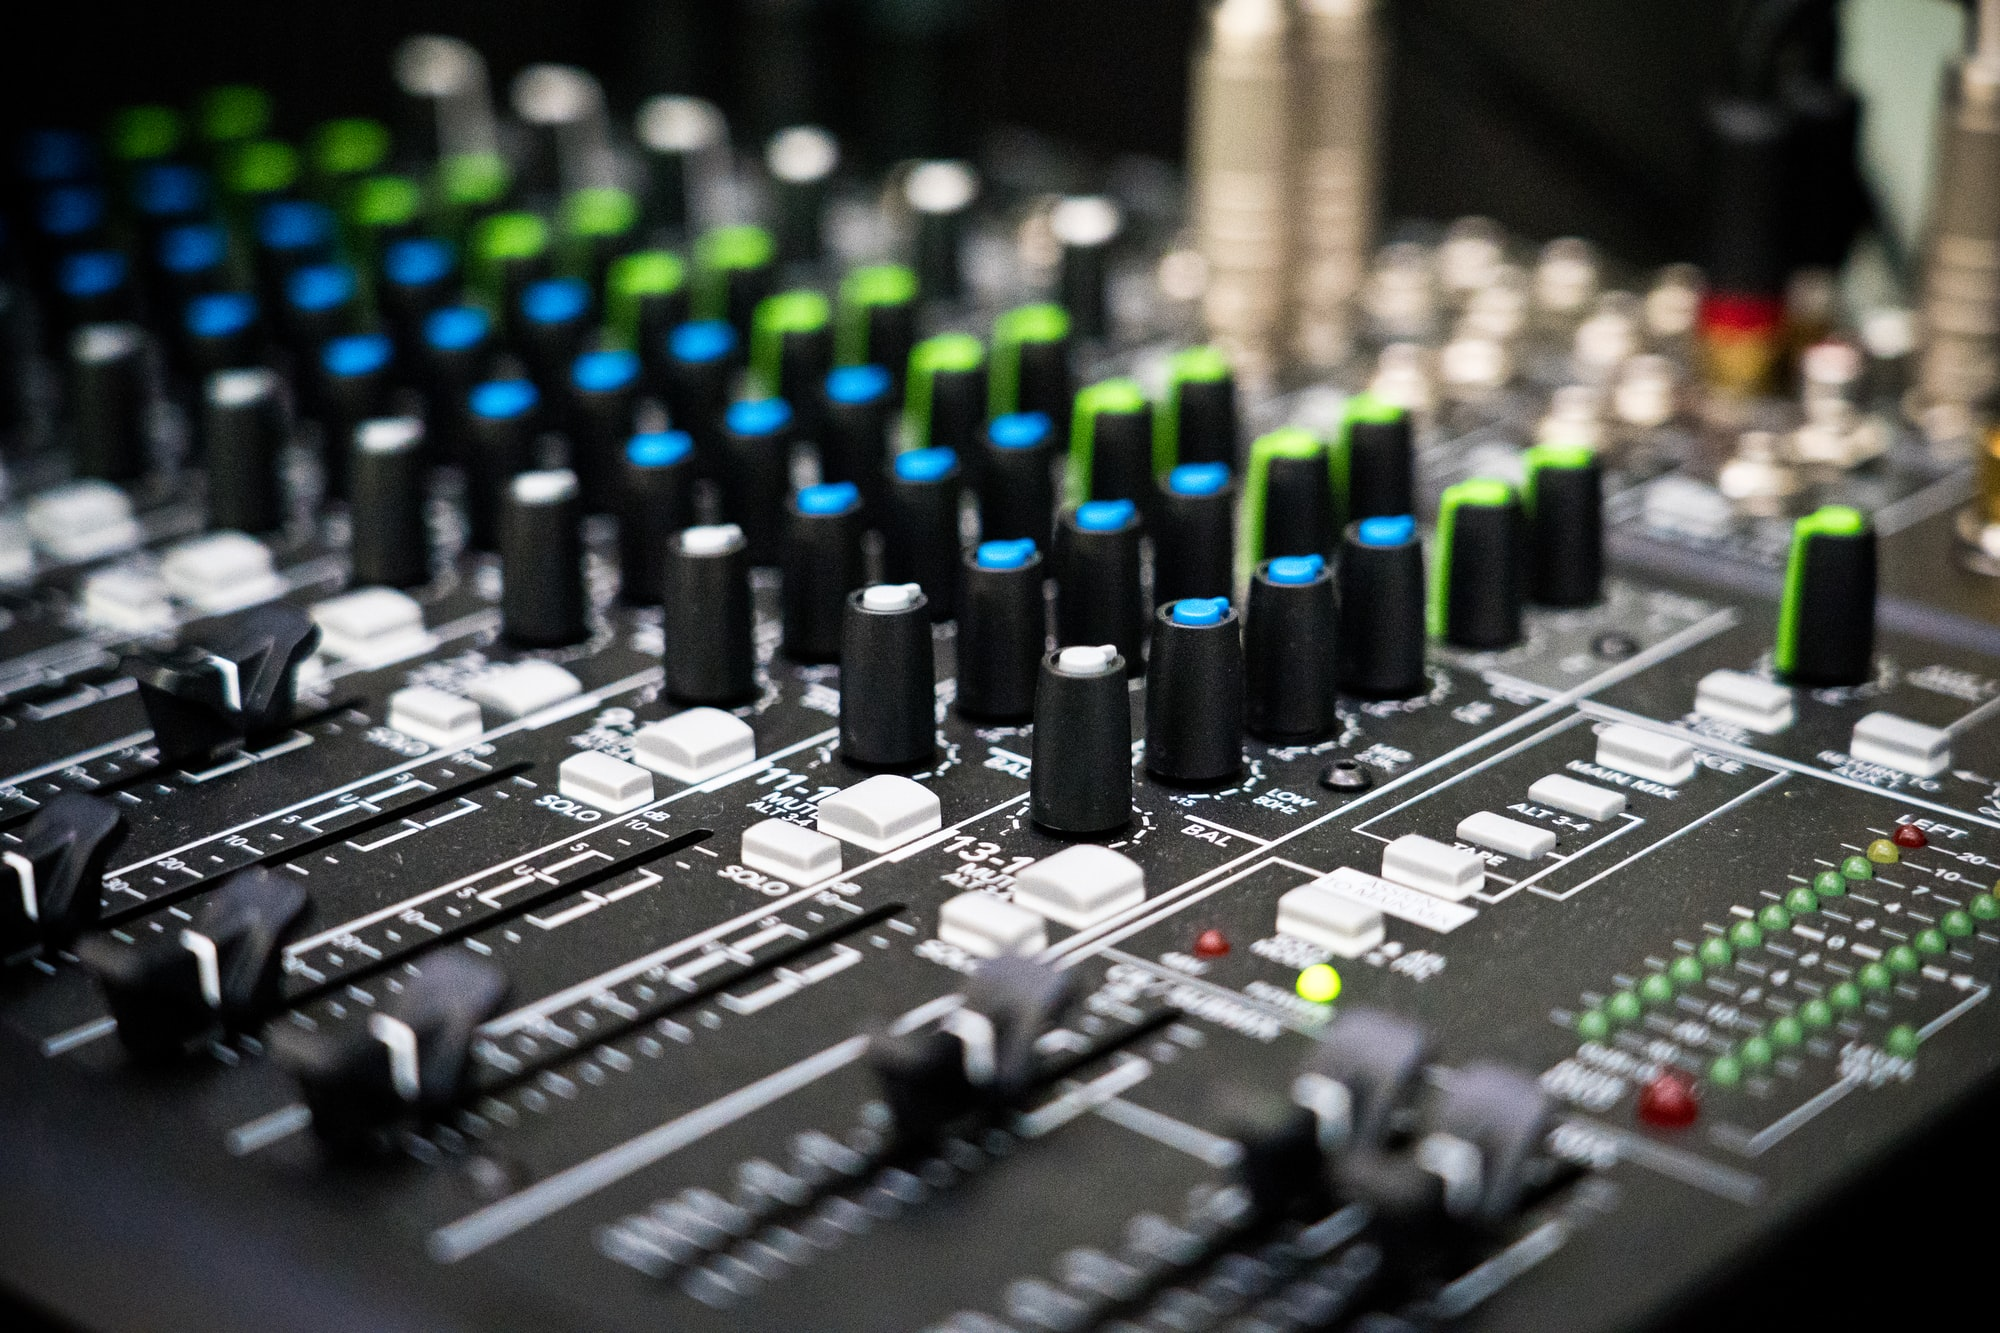 Audio mixer equipment.